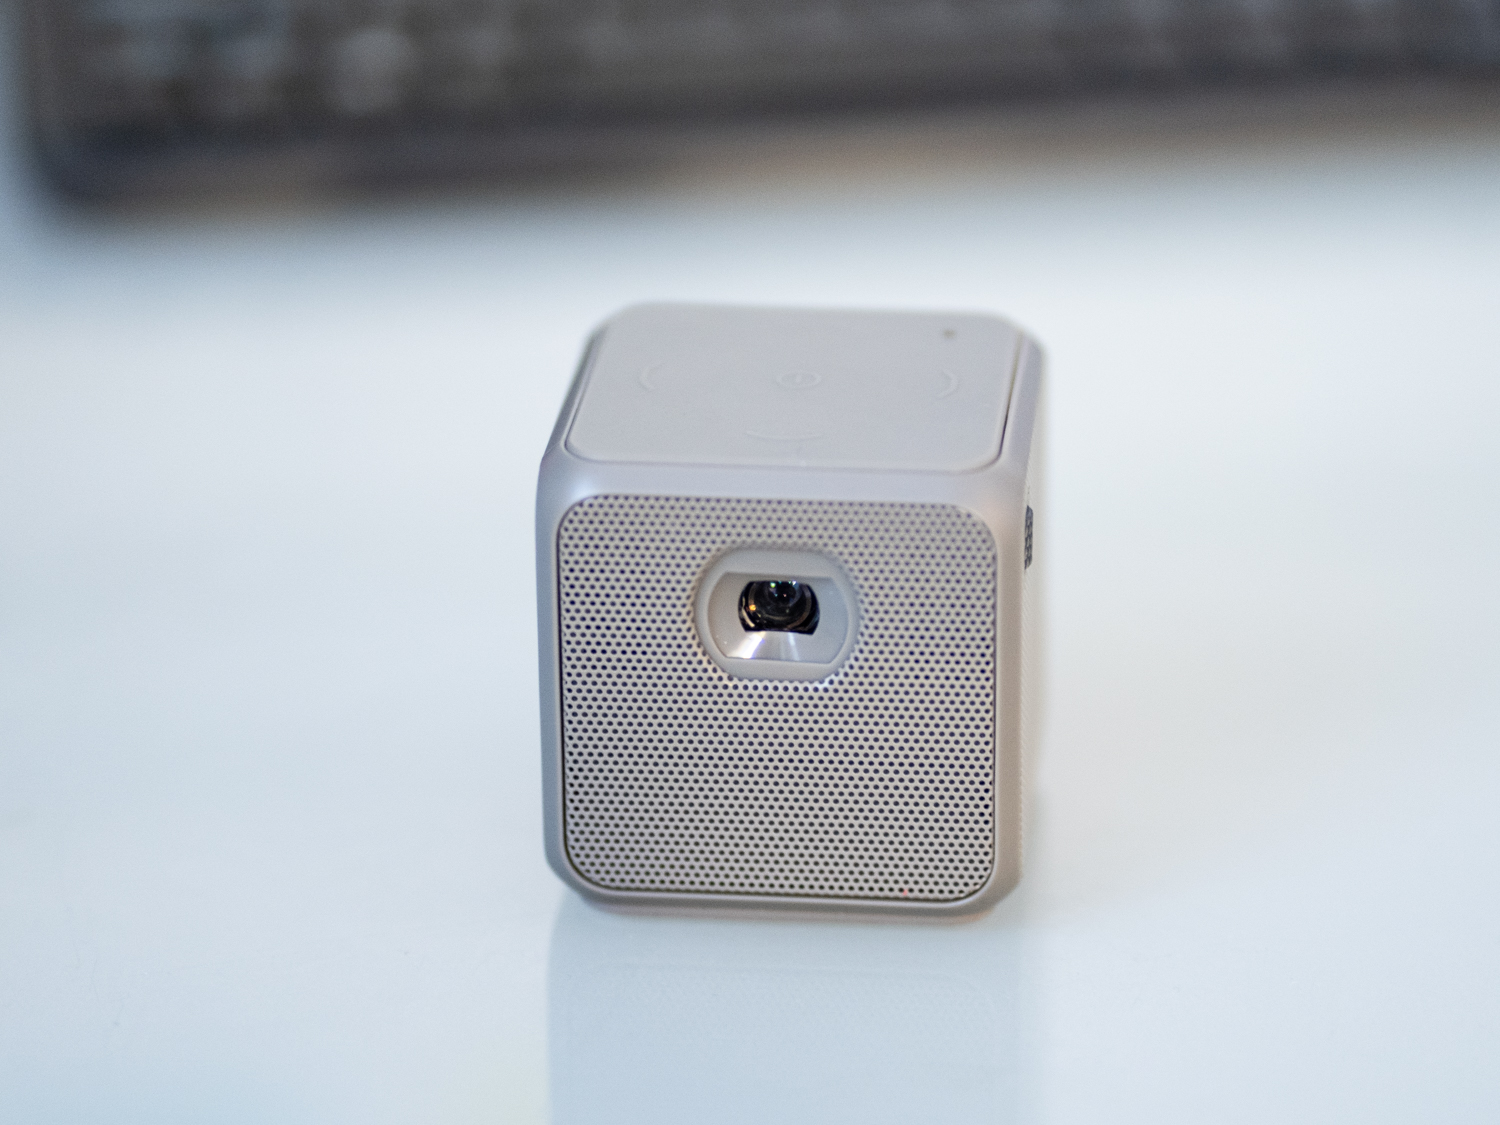 A photo of the front of the XPRIT smart cube projector